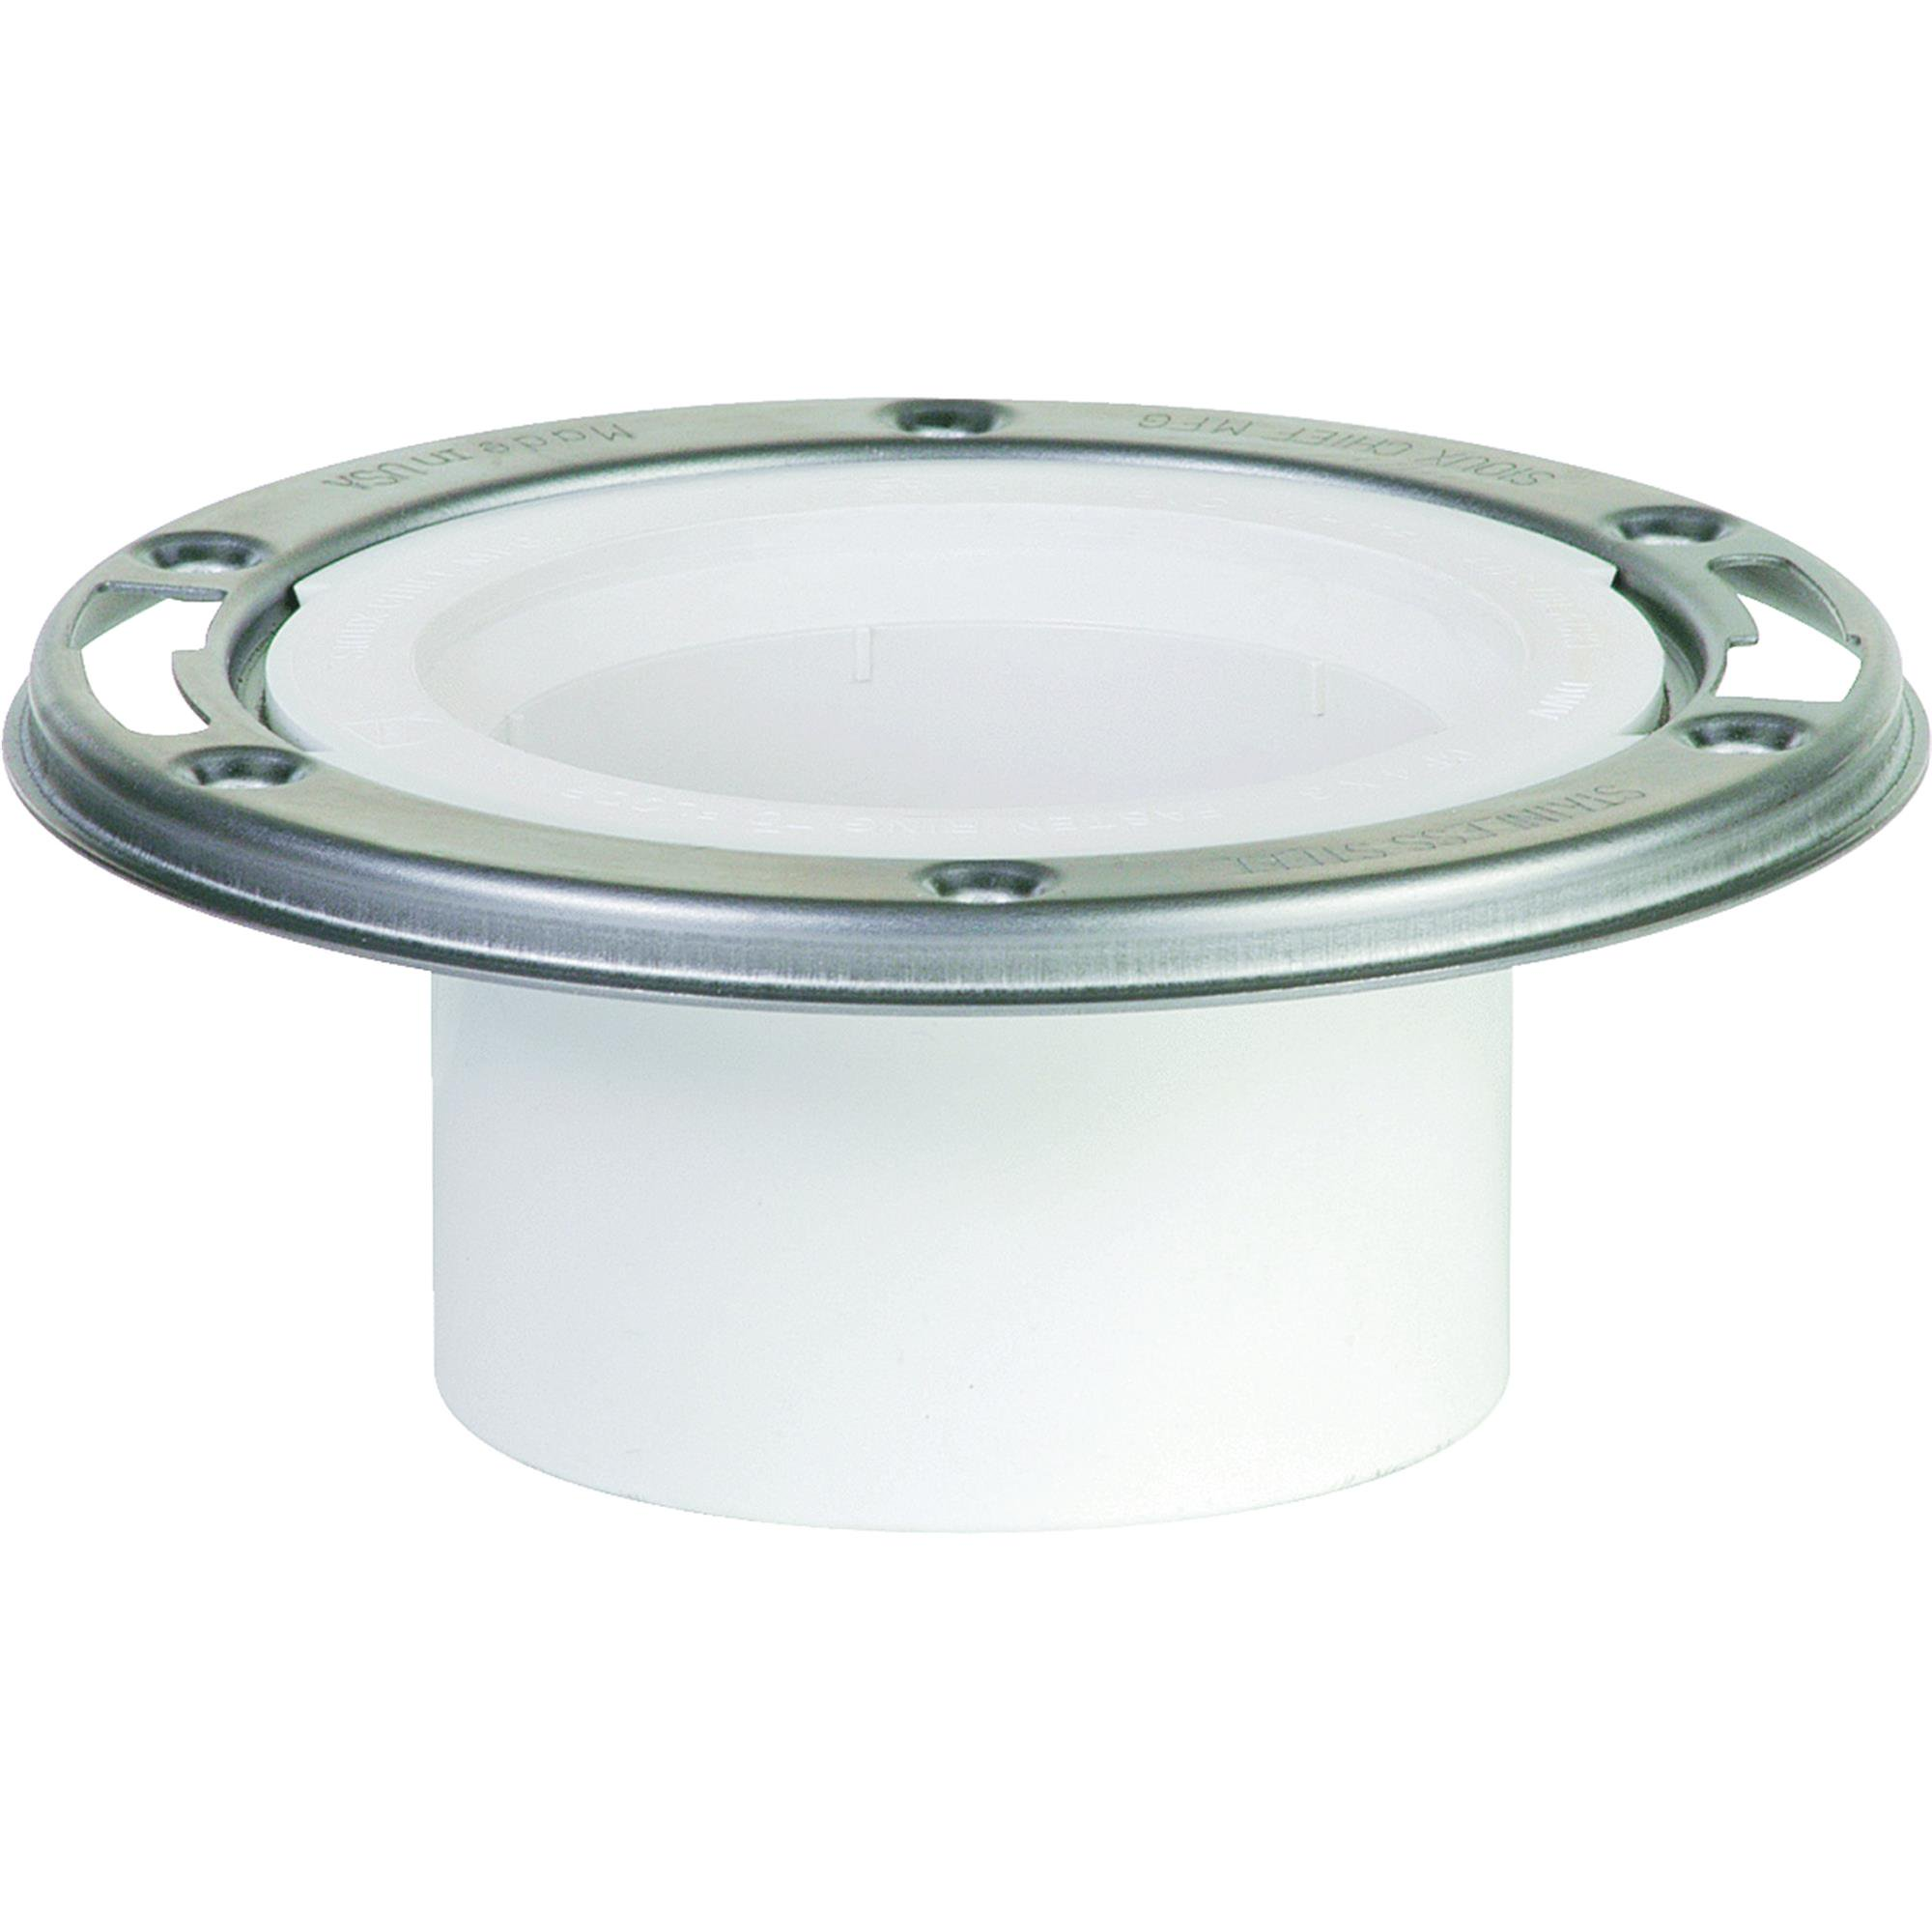 Sioux Chief PVC Open Closet Flange With Stainless Steel Ring by Sioux Chief